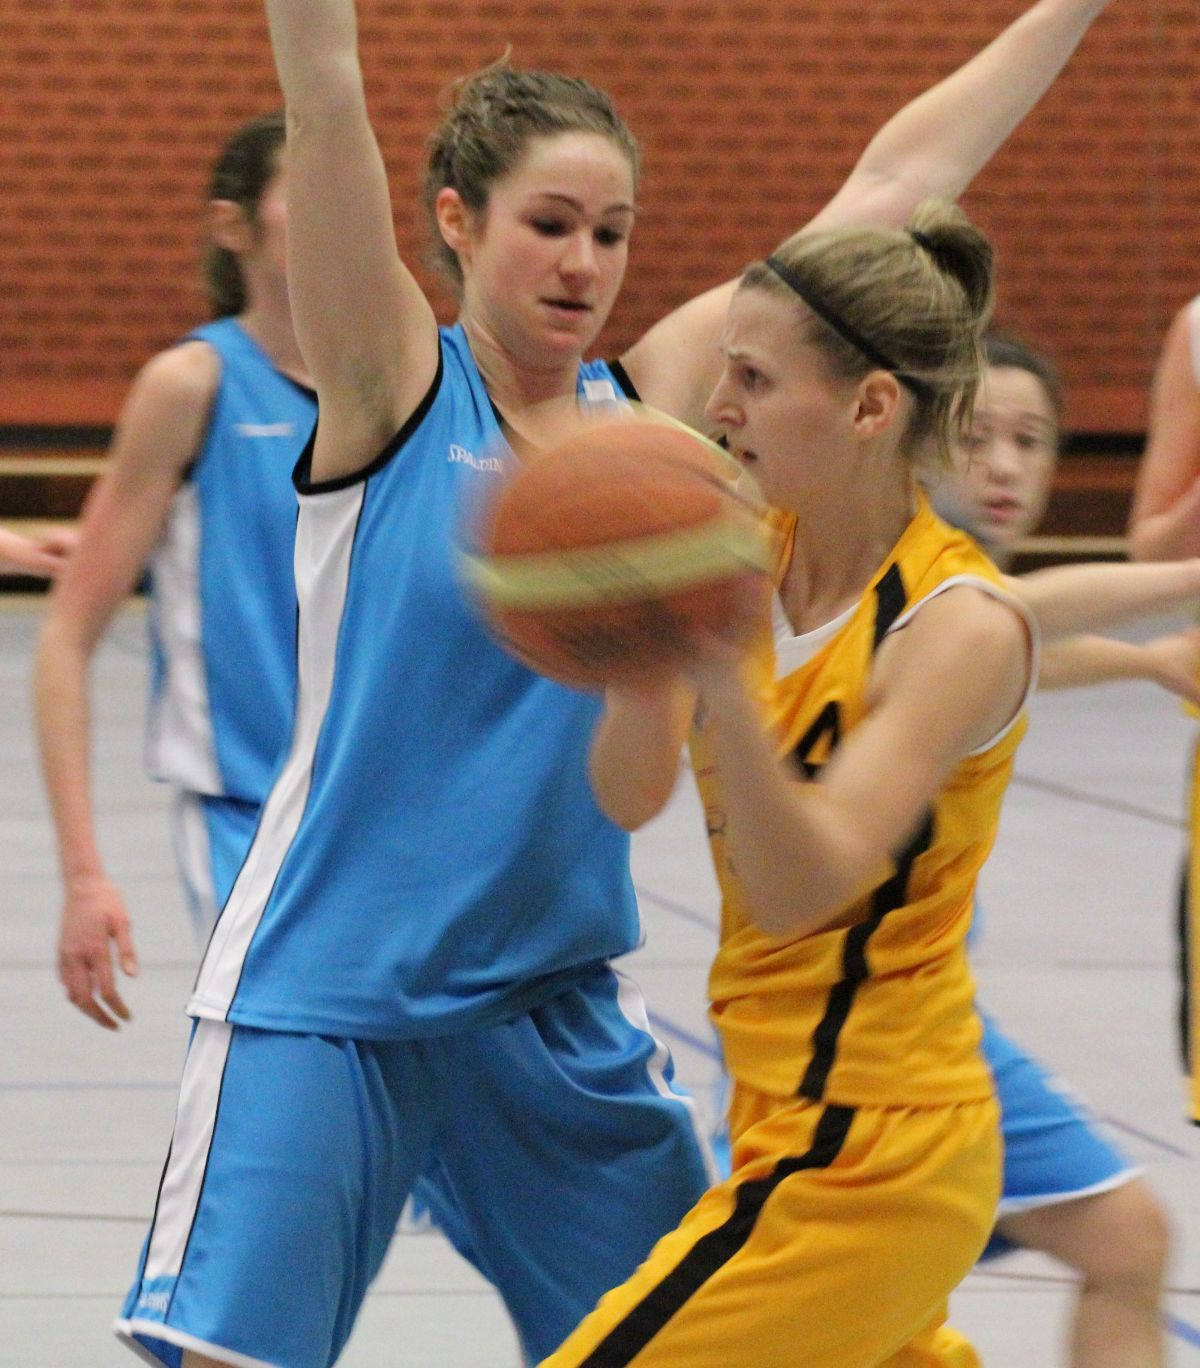 sandhausen basketball